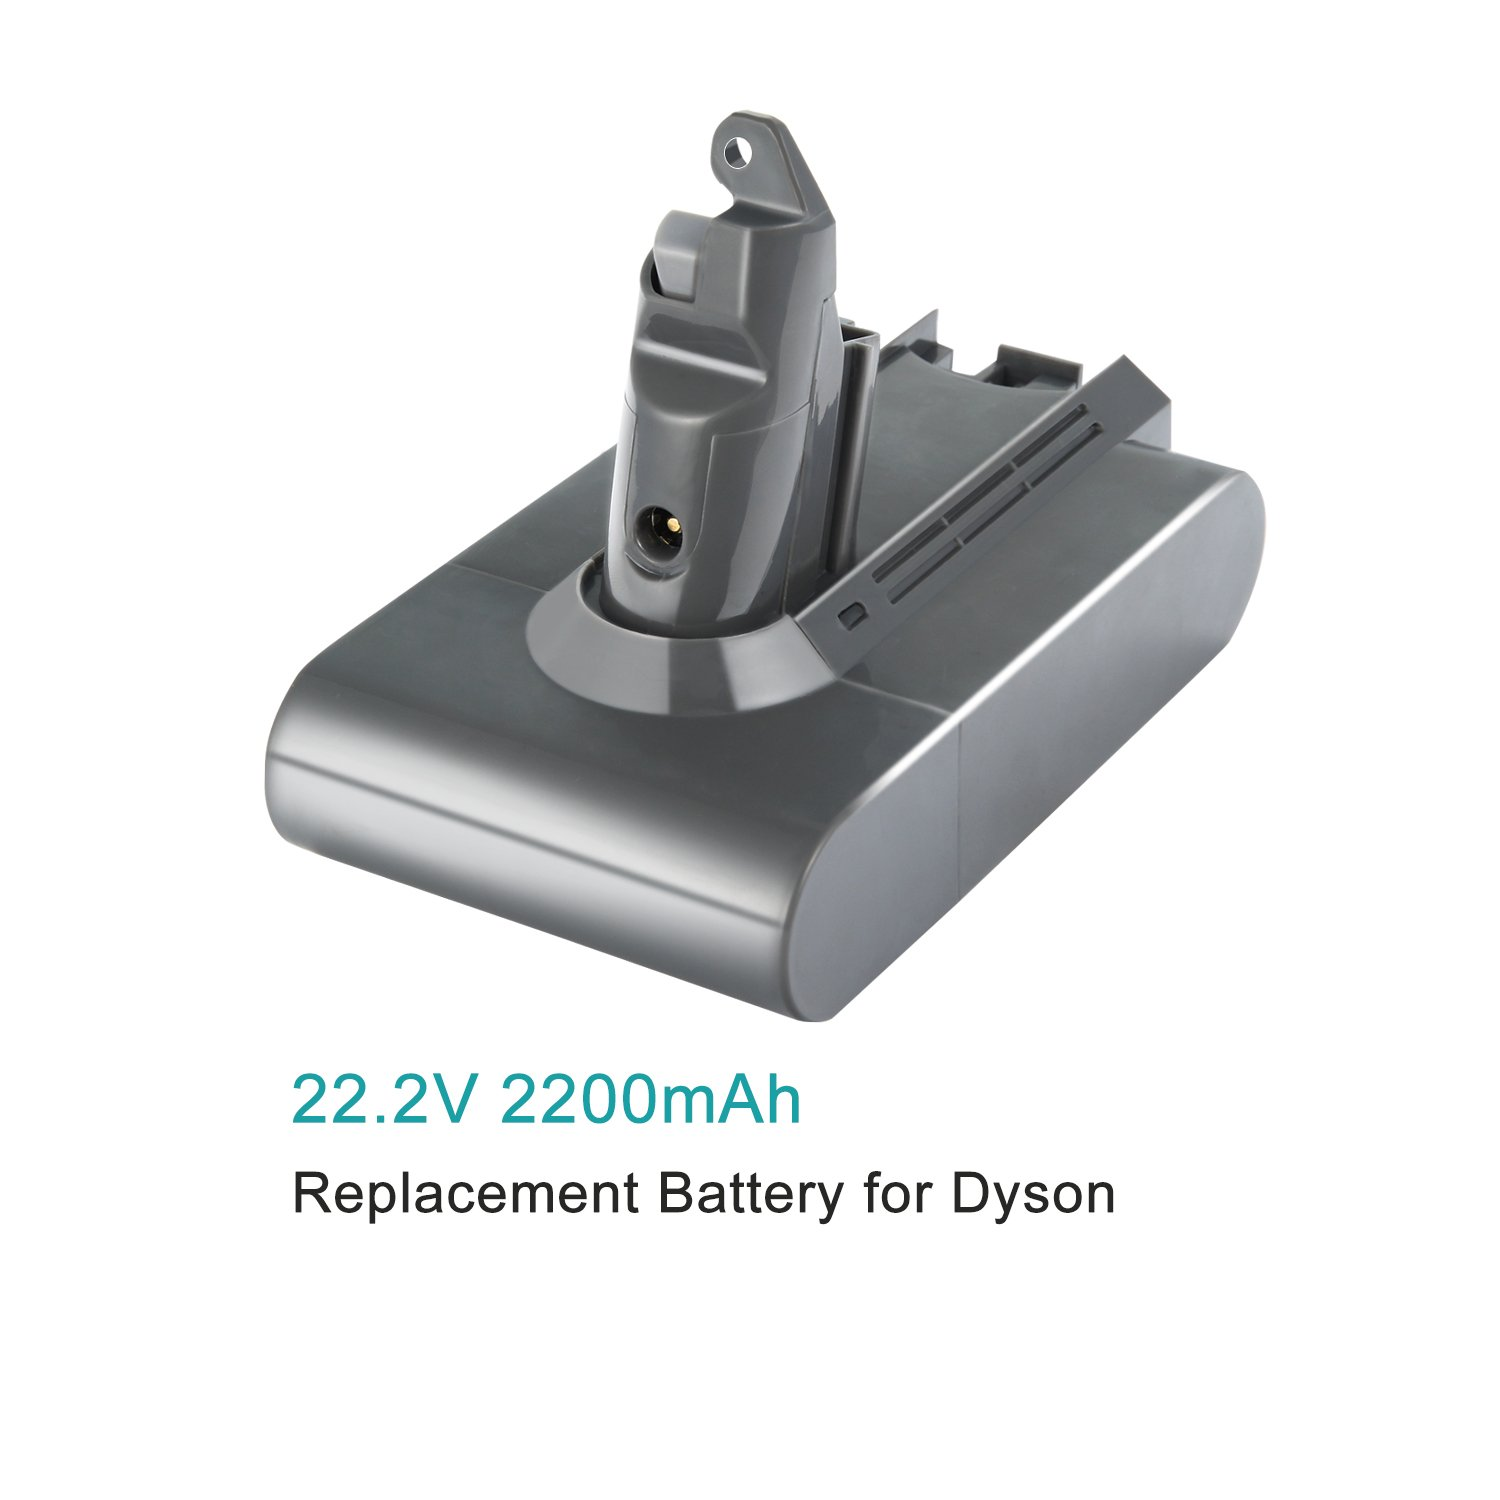 efluky 21.6V 2200mAh Replacement Battery for Dyson V6 DC58 DC59 DC61 DC62 Animal Handheld Li-ion Battery by efluky (Image #2)